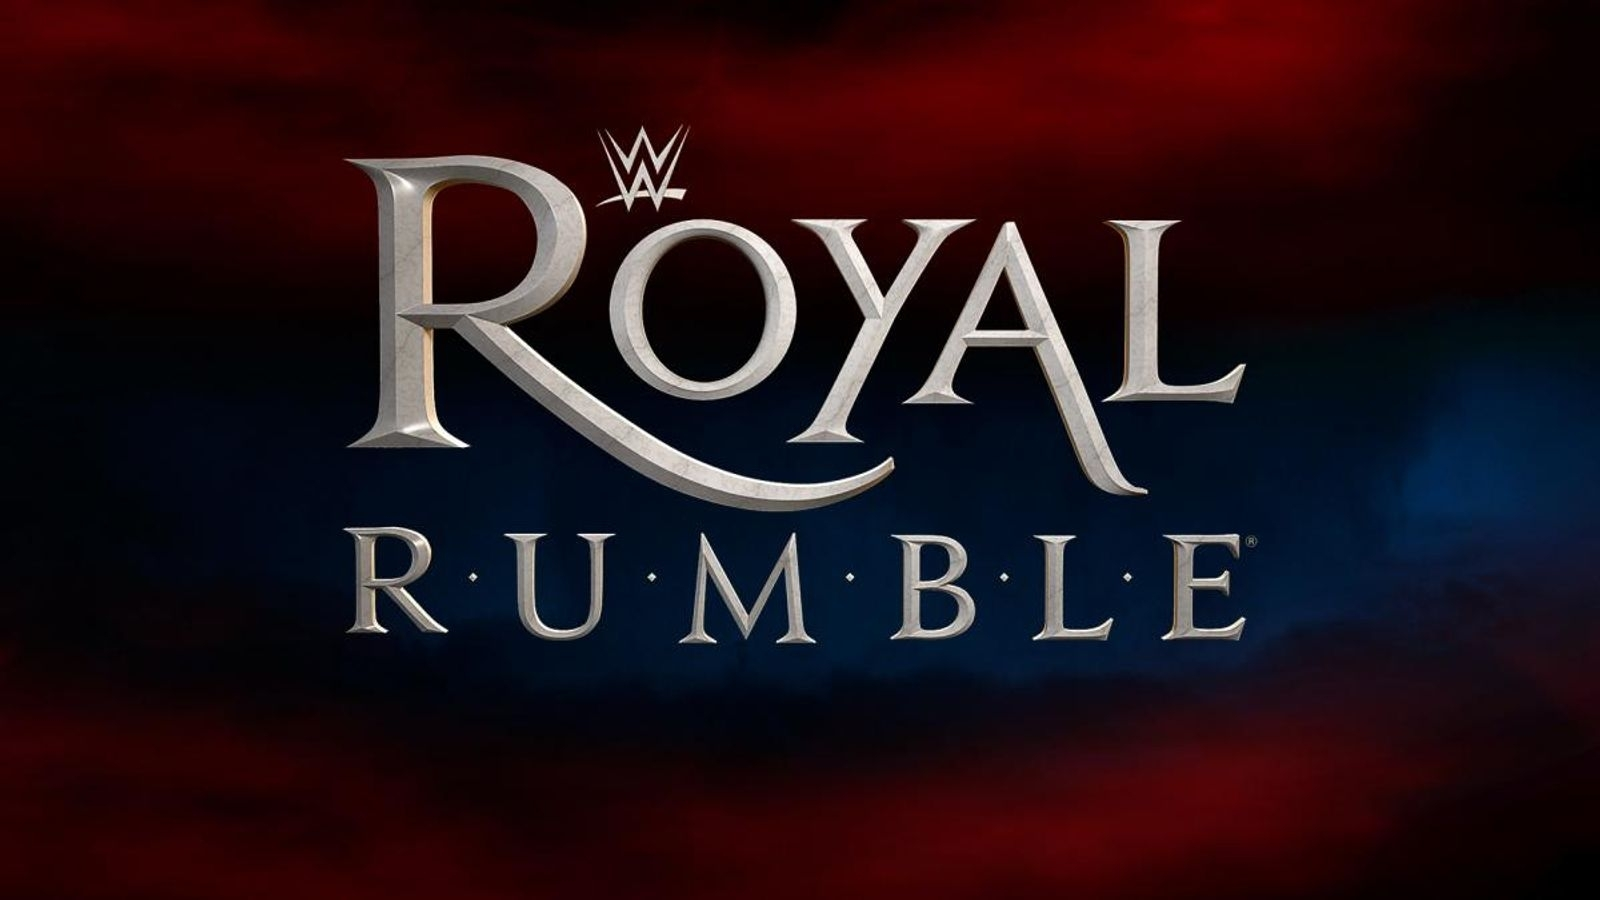 Wwe: Royal Rumble To Take Place In Texas On January 29